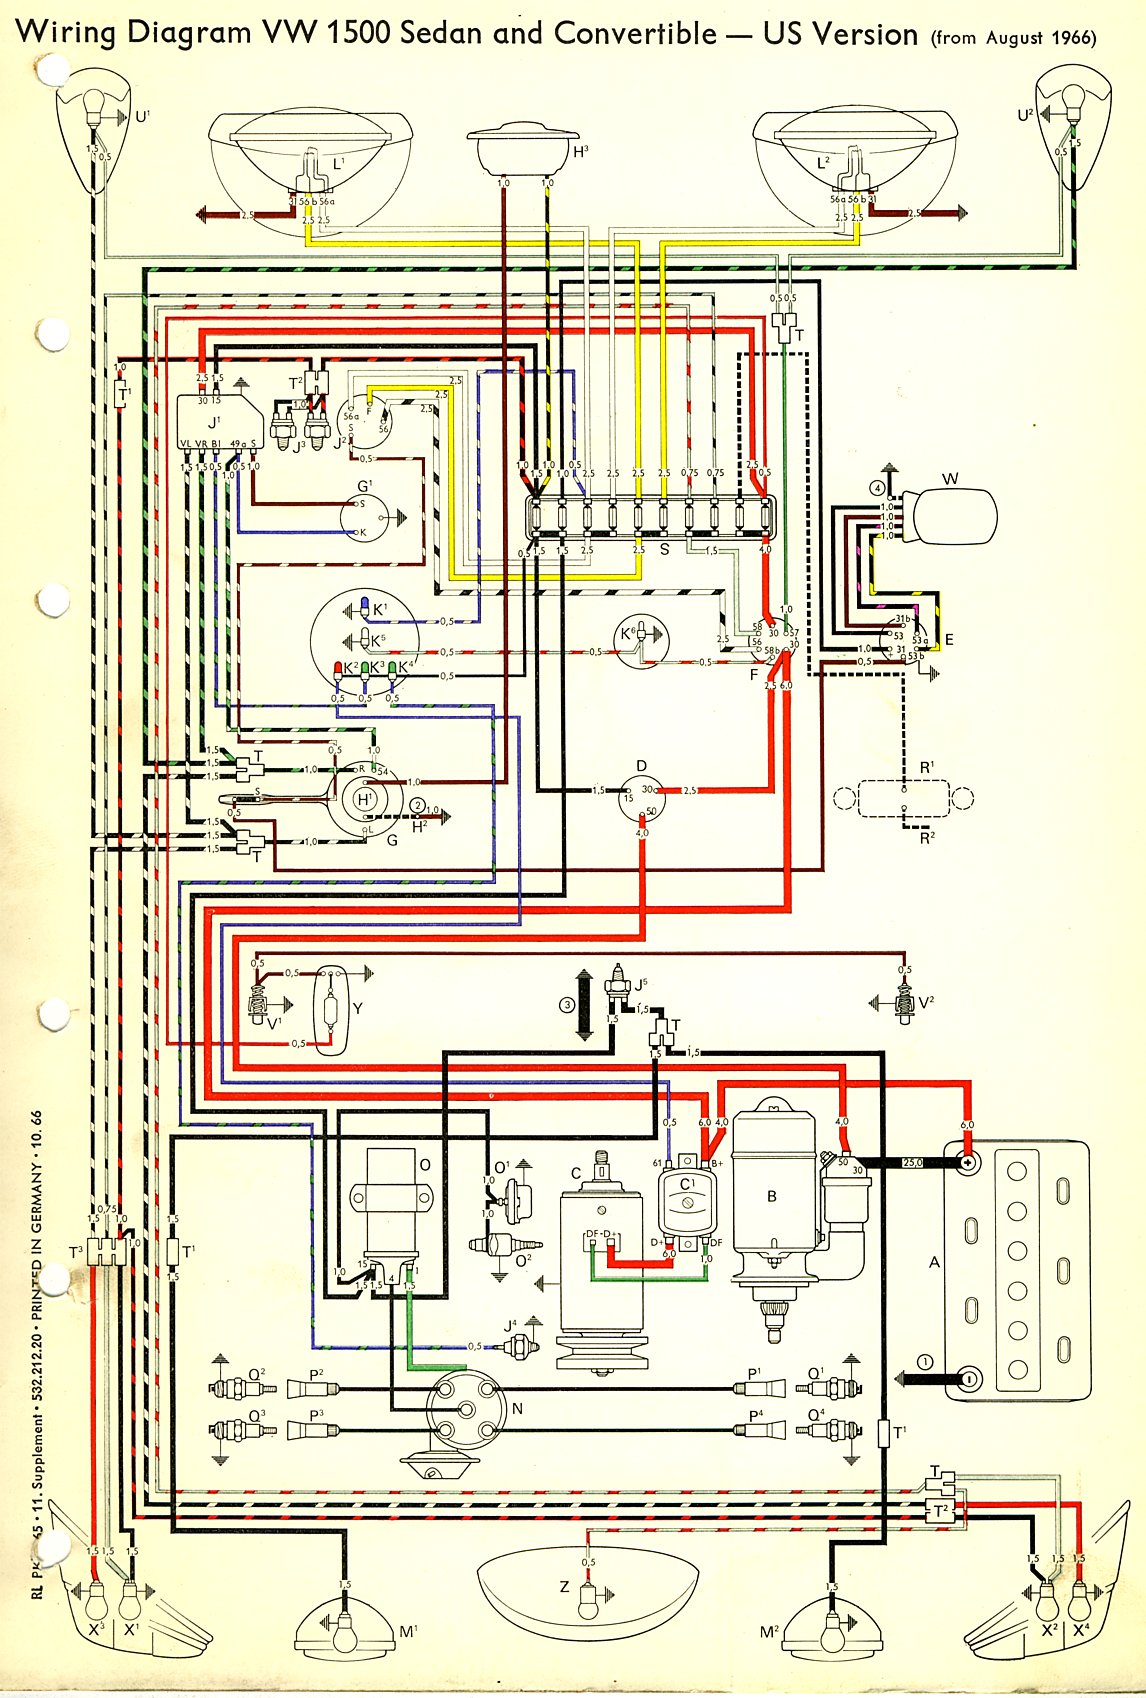 67 Vw Wiring Harness Free Download Diagram Schematic ...  Volkswagen Bug Wiring Diagram on classic bug, 67 volkswagen vanagon, 67 volkswagen busfor sale, 67 volkswagen bus, baja bug, 67 volkswagen beetle older, 67 volkswagen fastback, vw bug, bob beetle bug,